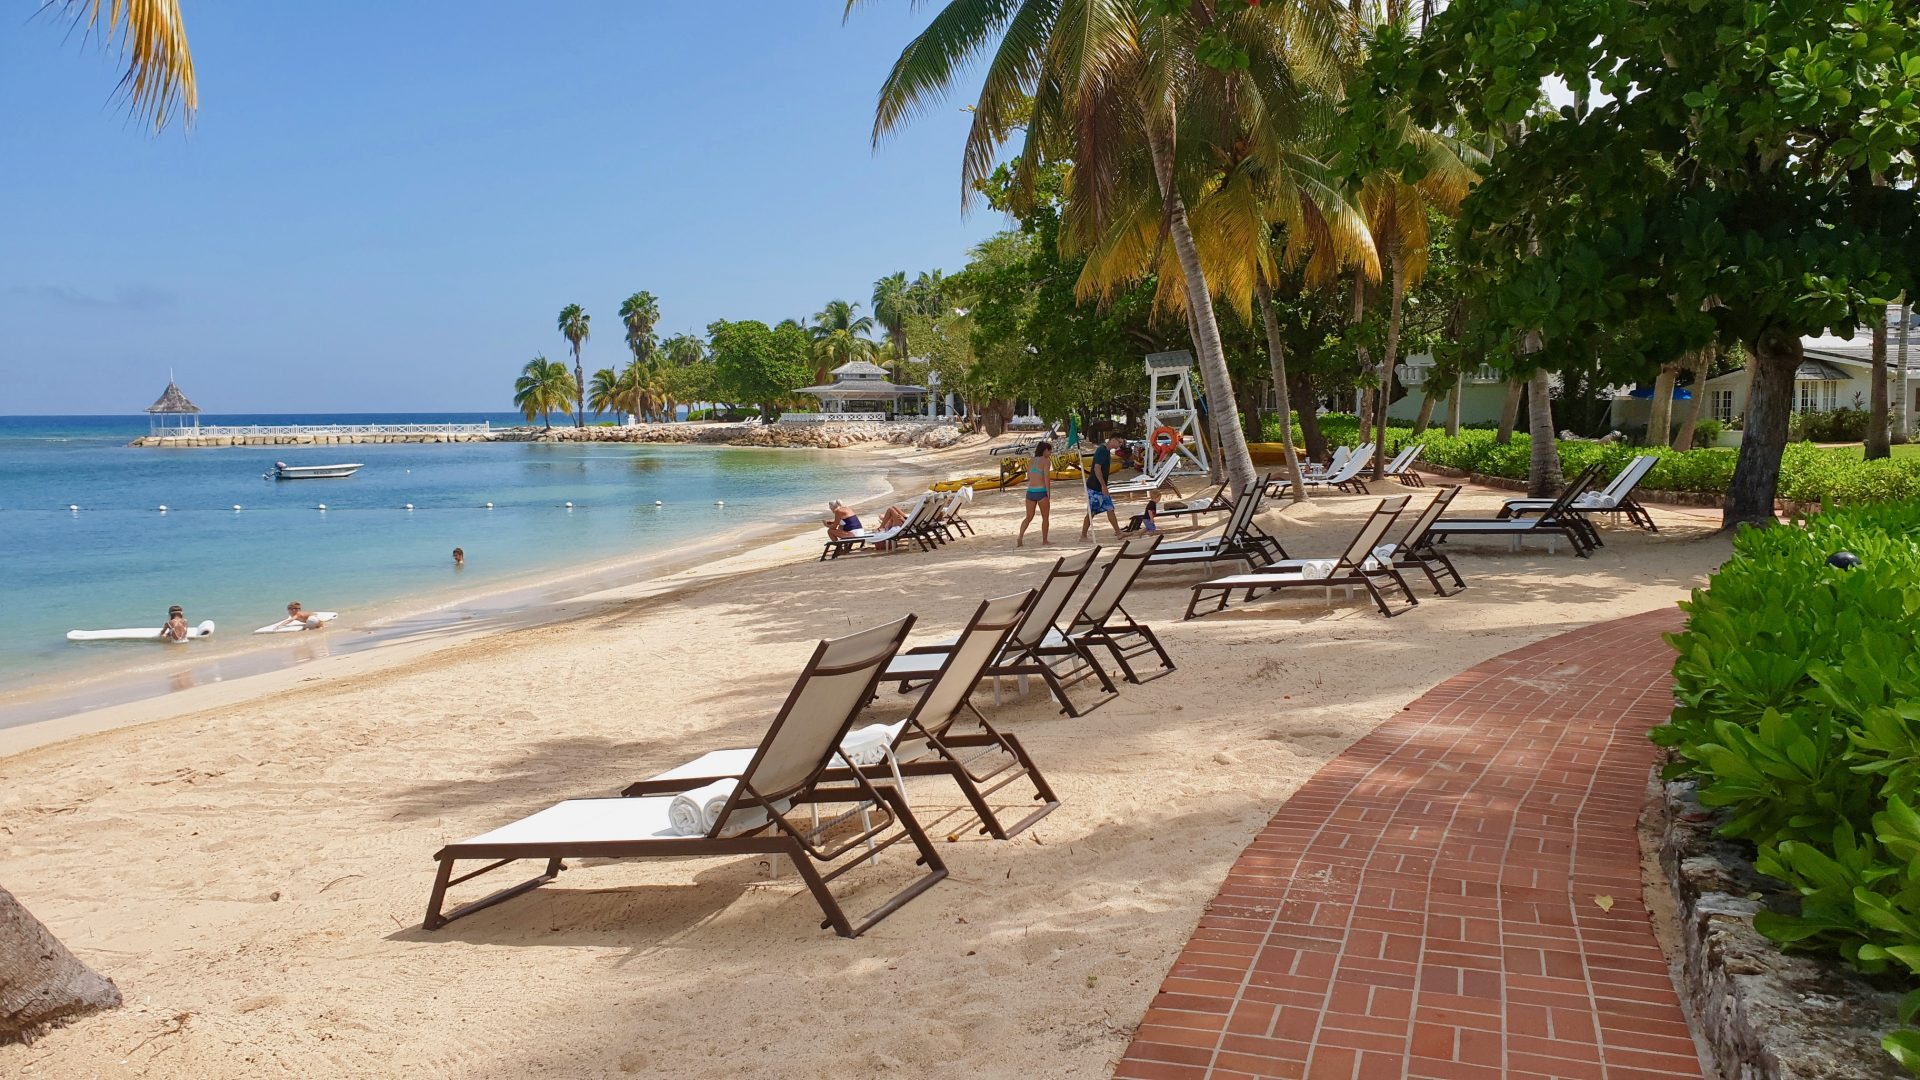 Partial view of Sunset Beach at Half Moon resort in Jamaica.